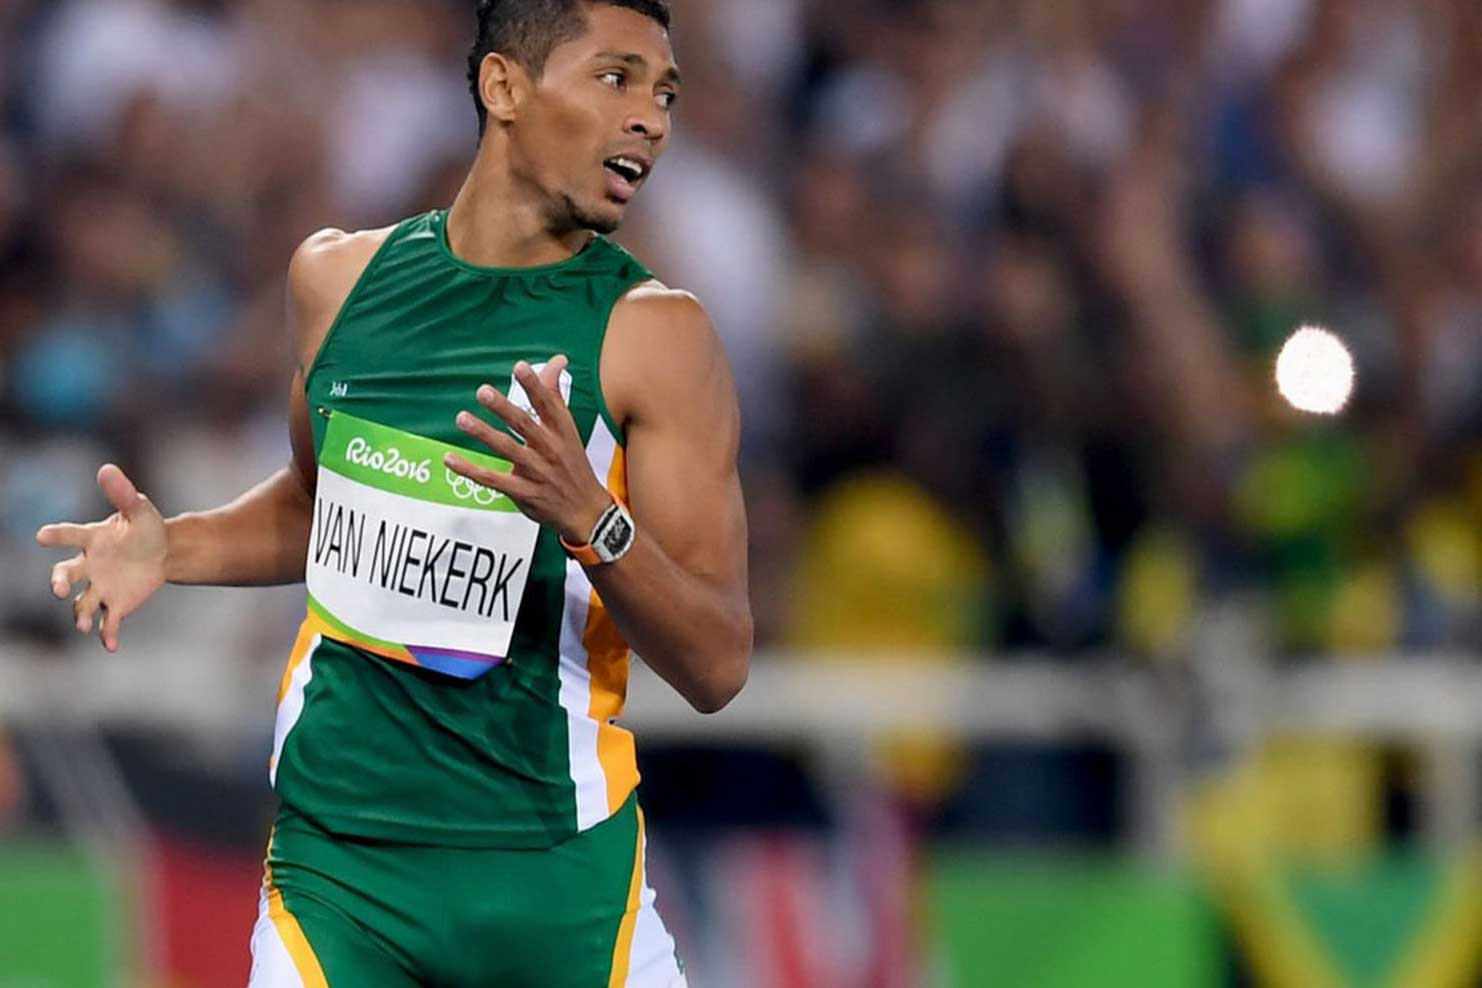 South African sprinter, Wayde van Niekerk breaks the 400m men's record at Rio wearing the RM 27-02